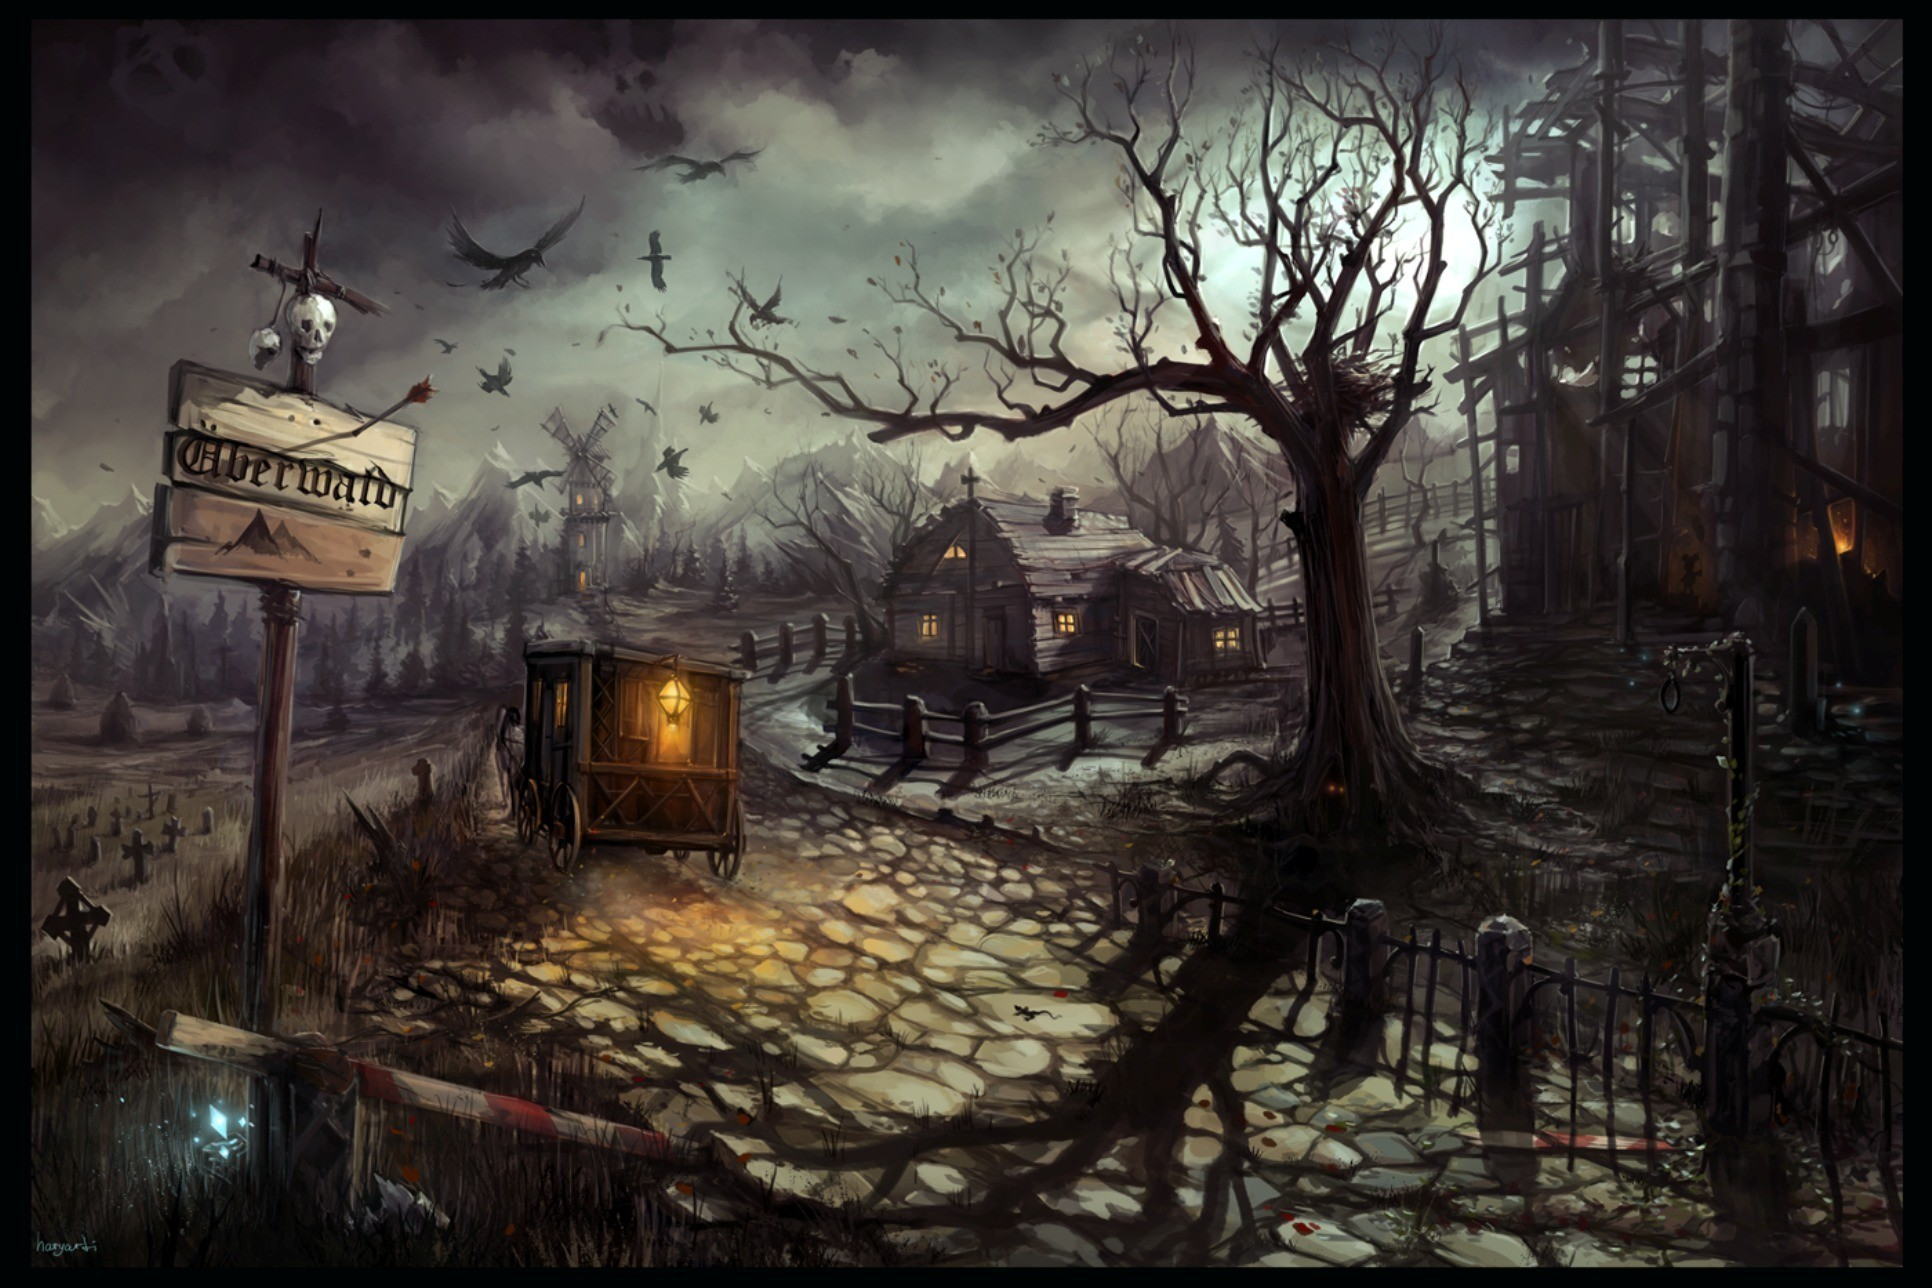 haunted background desktop wallpapers backgrounds computer android iphone wallpapertag ipad resolution